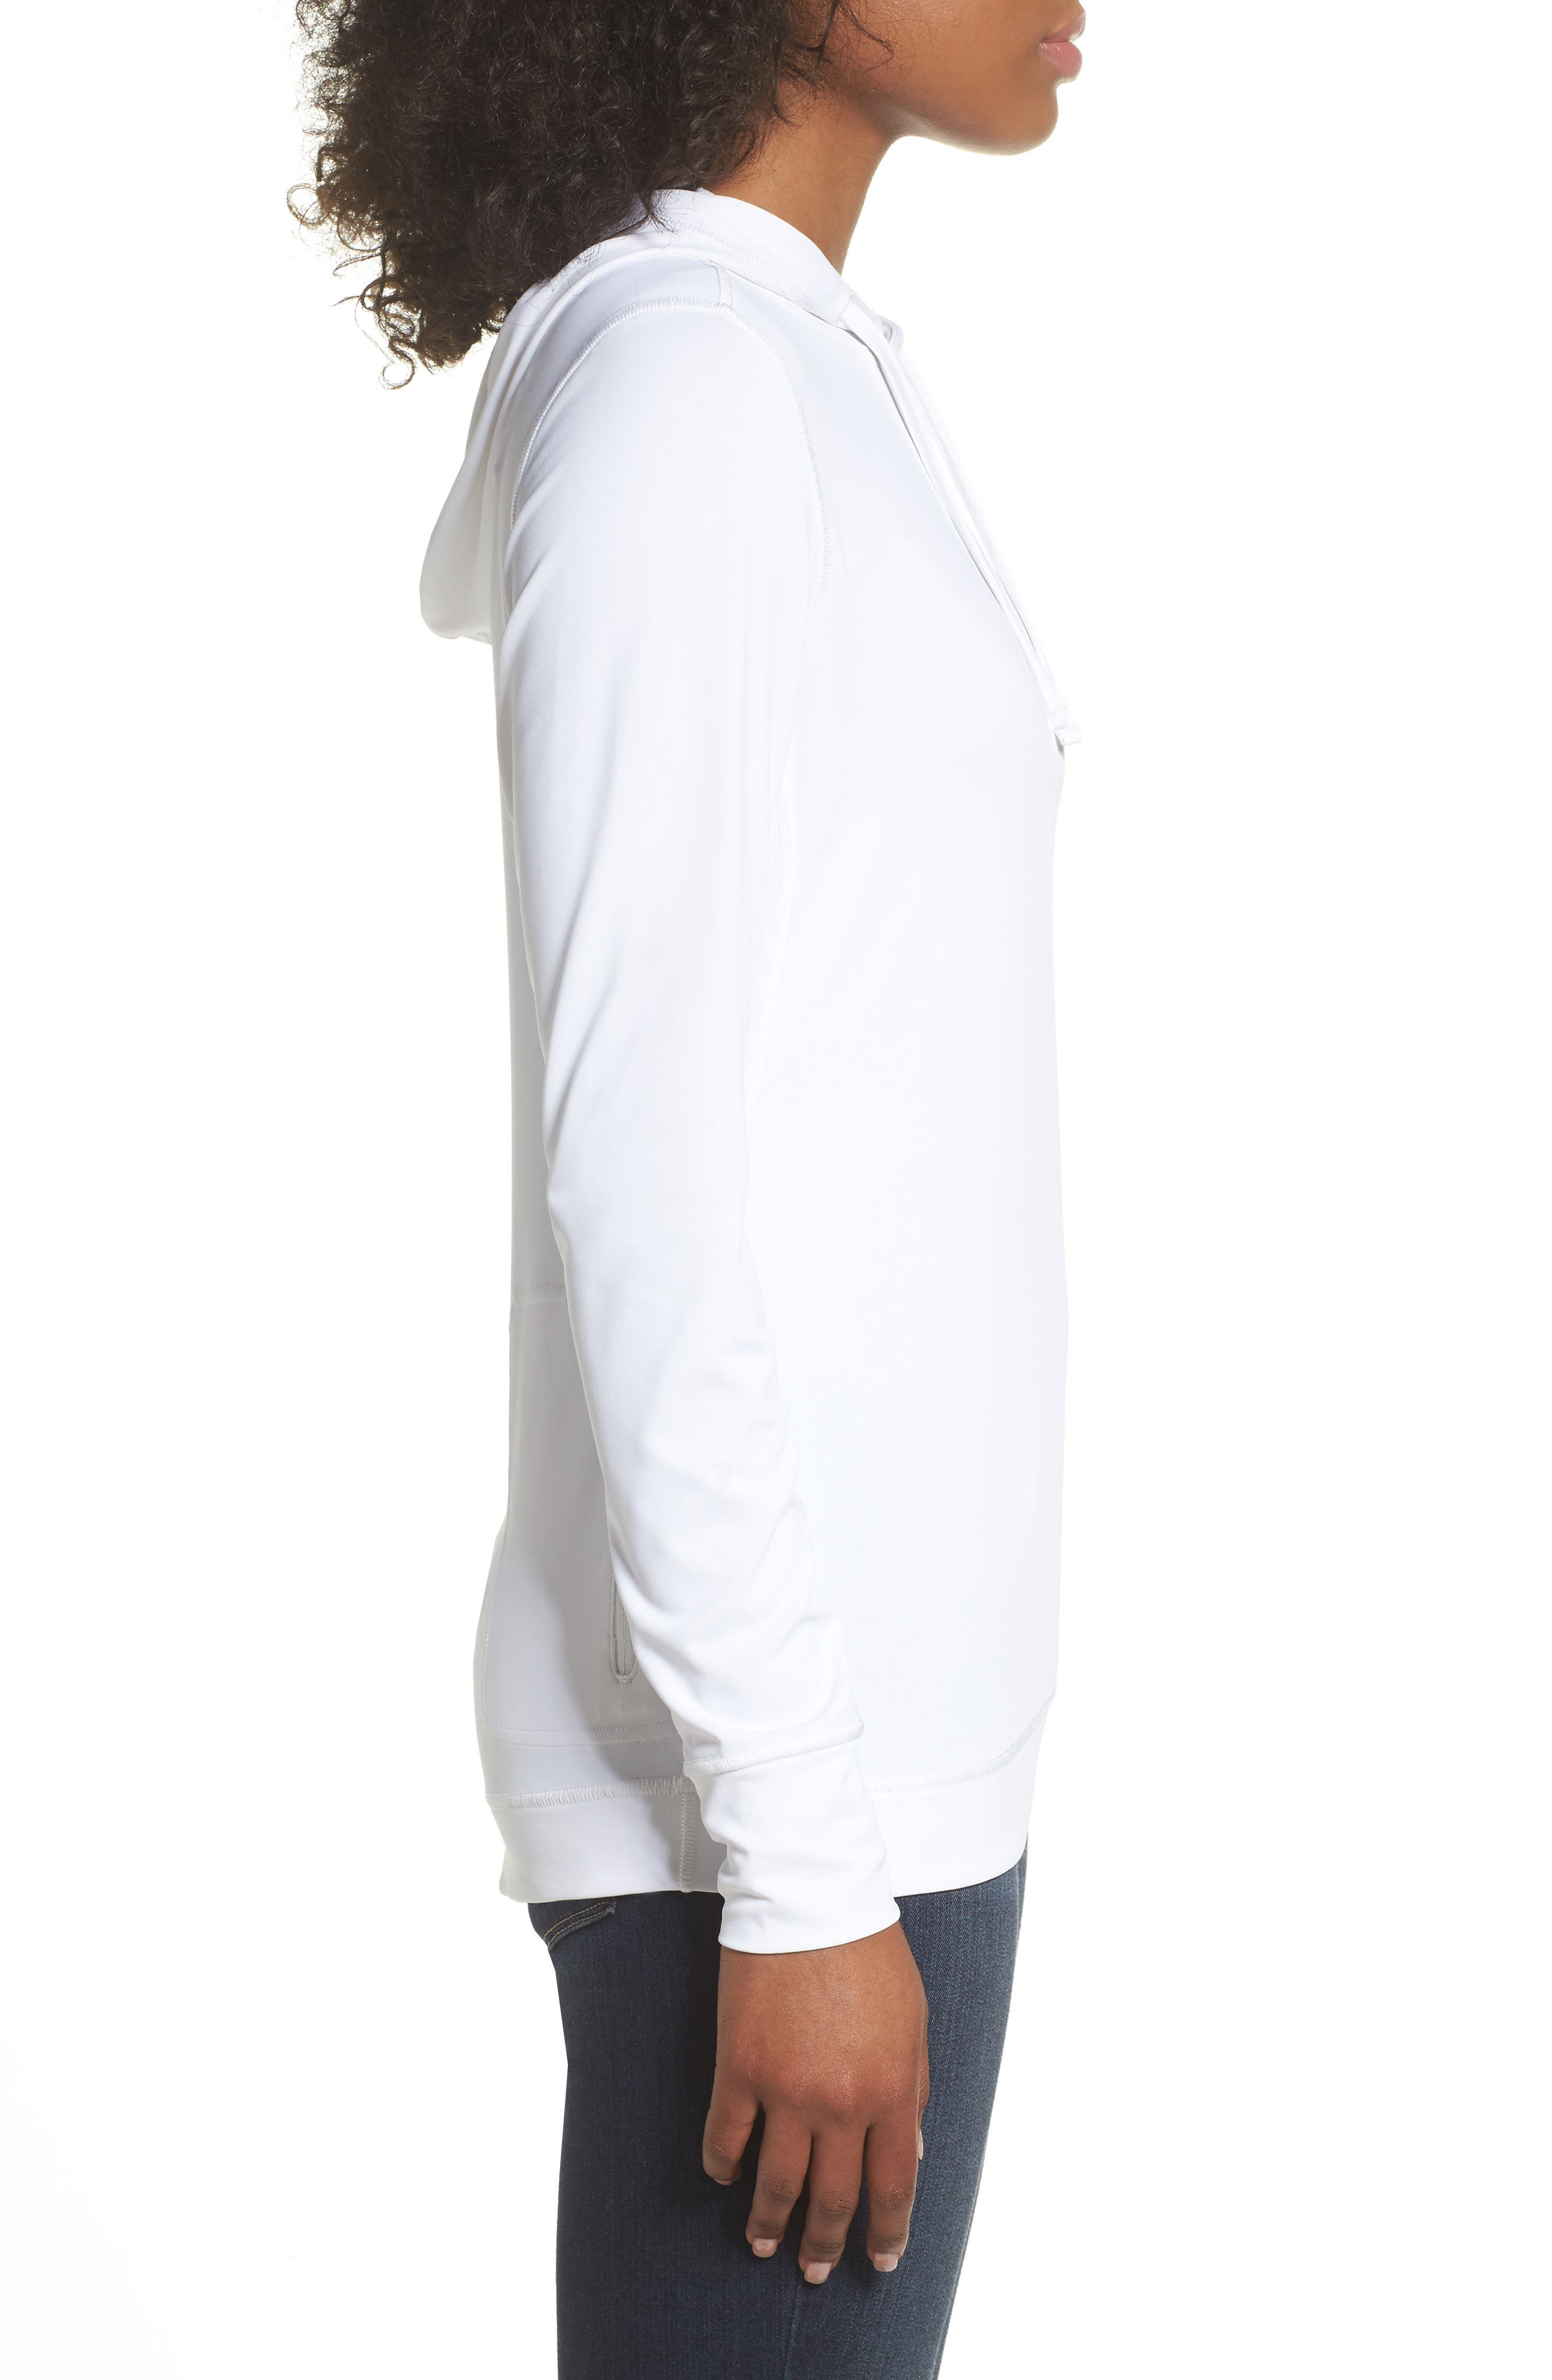 Shade Me Hooded Top,                             Alternate thumbnail 3, color,                             100